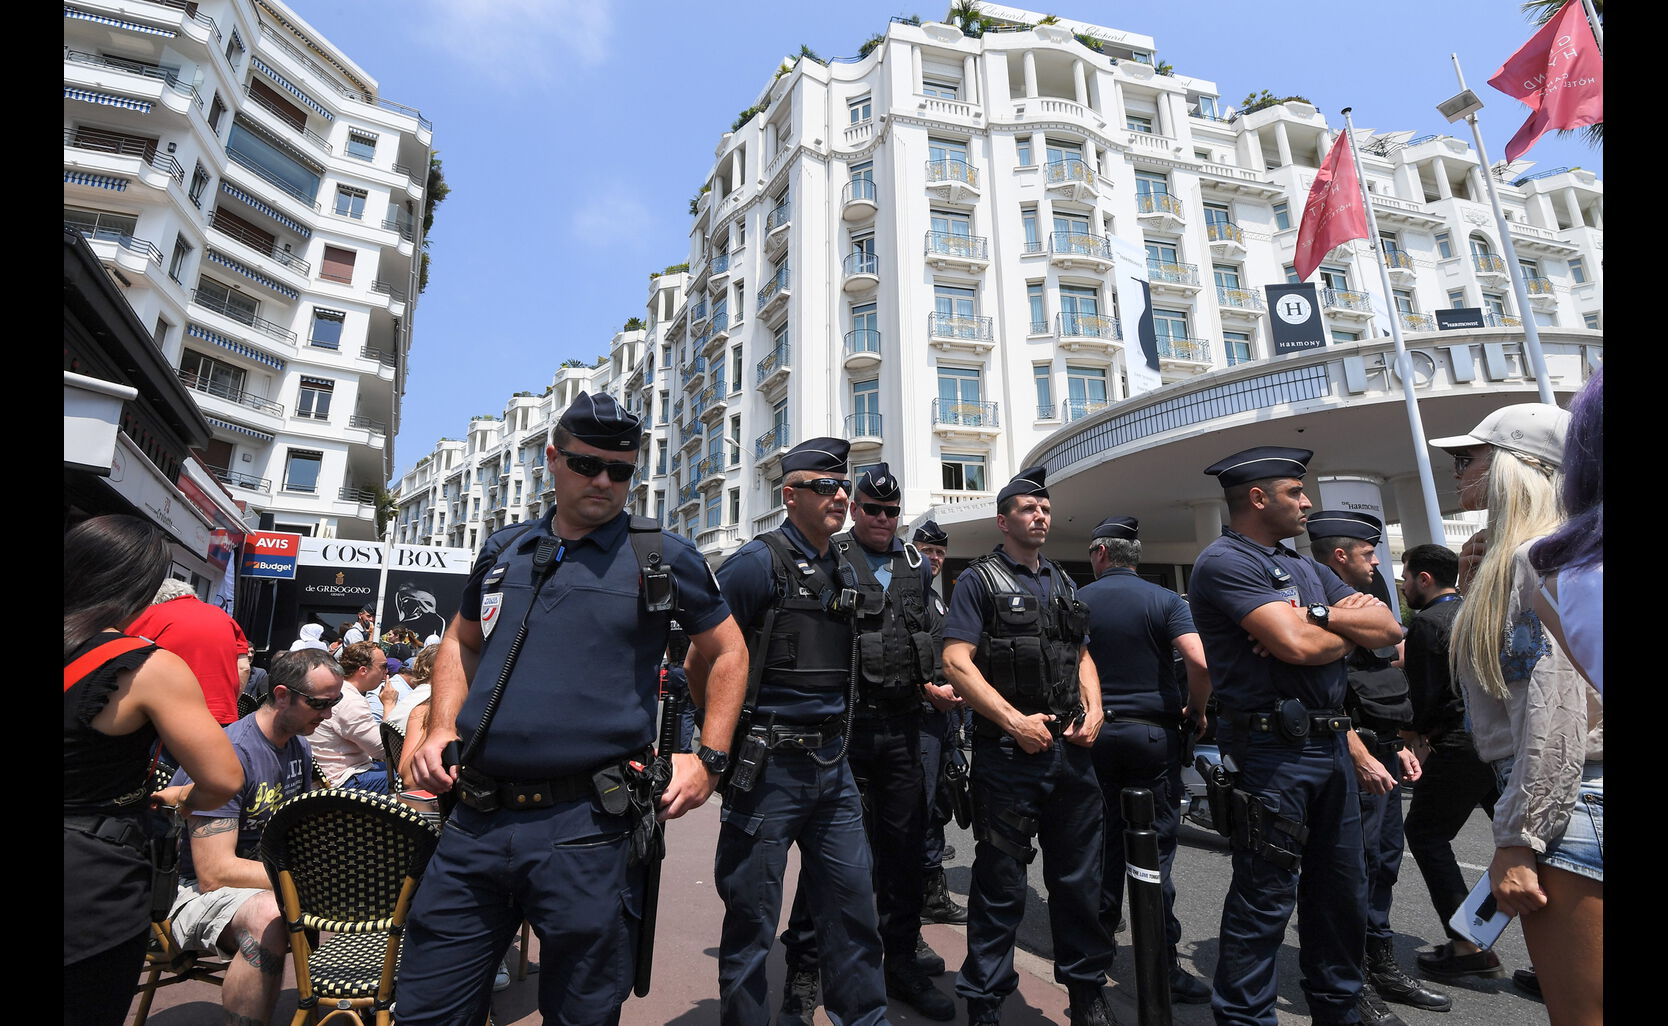 Security forces patrol on the Croisette on May 26, 2017 during the 70th edition of the Cannes Film Festival in Cannes, southern France.